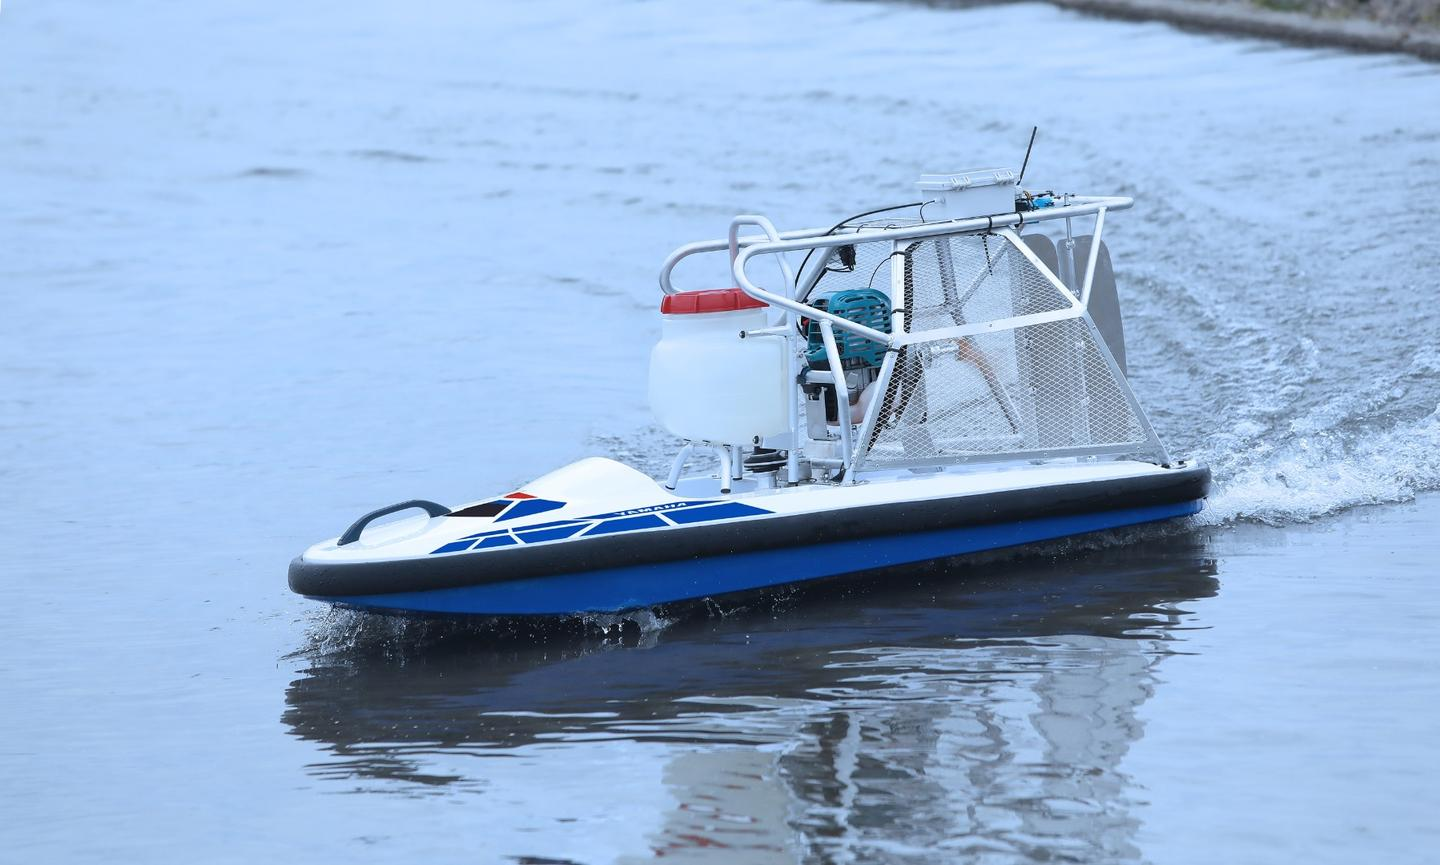 The Yamaha Water Strider sprays herbicide from its hull